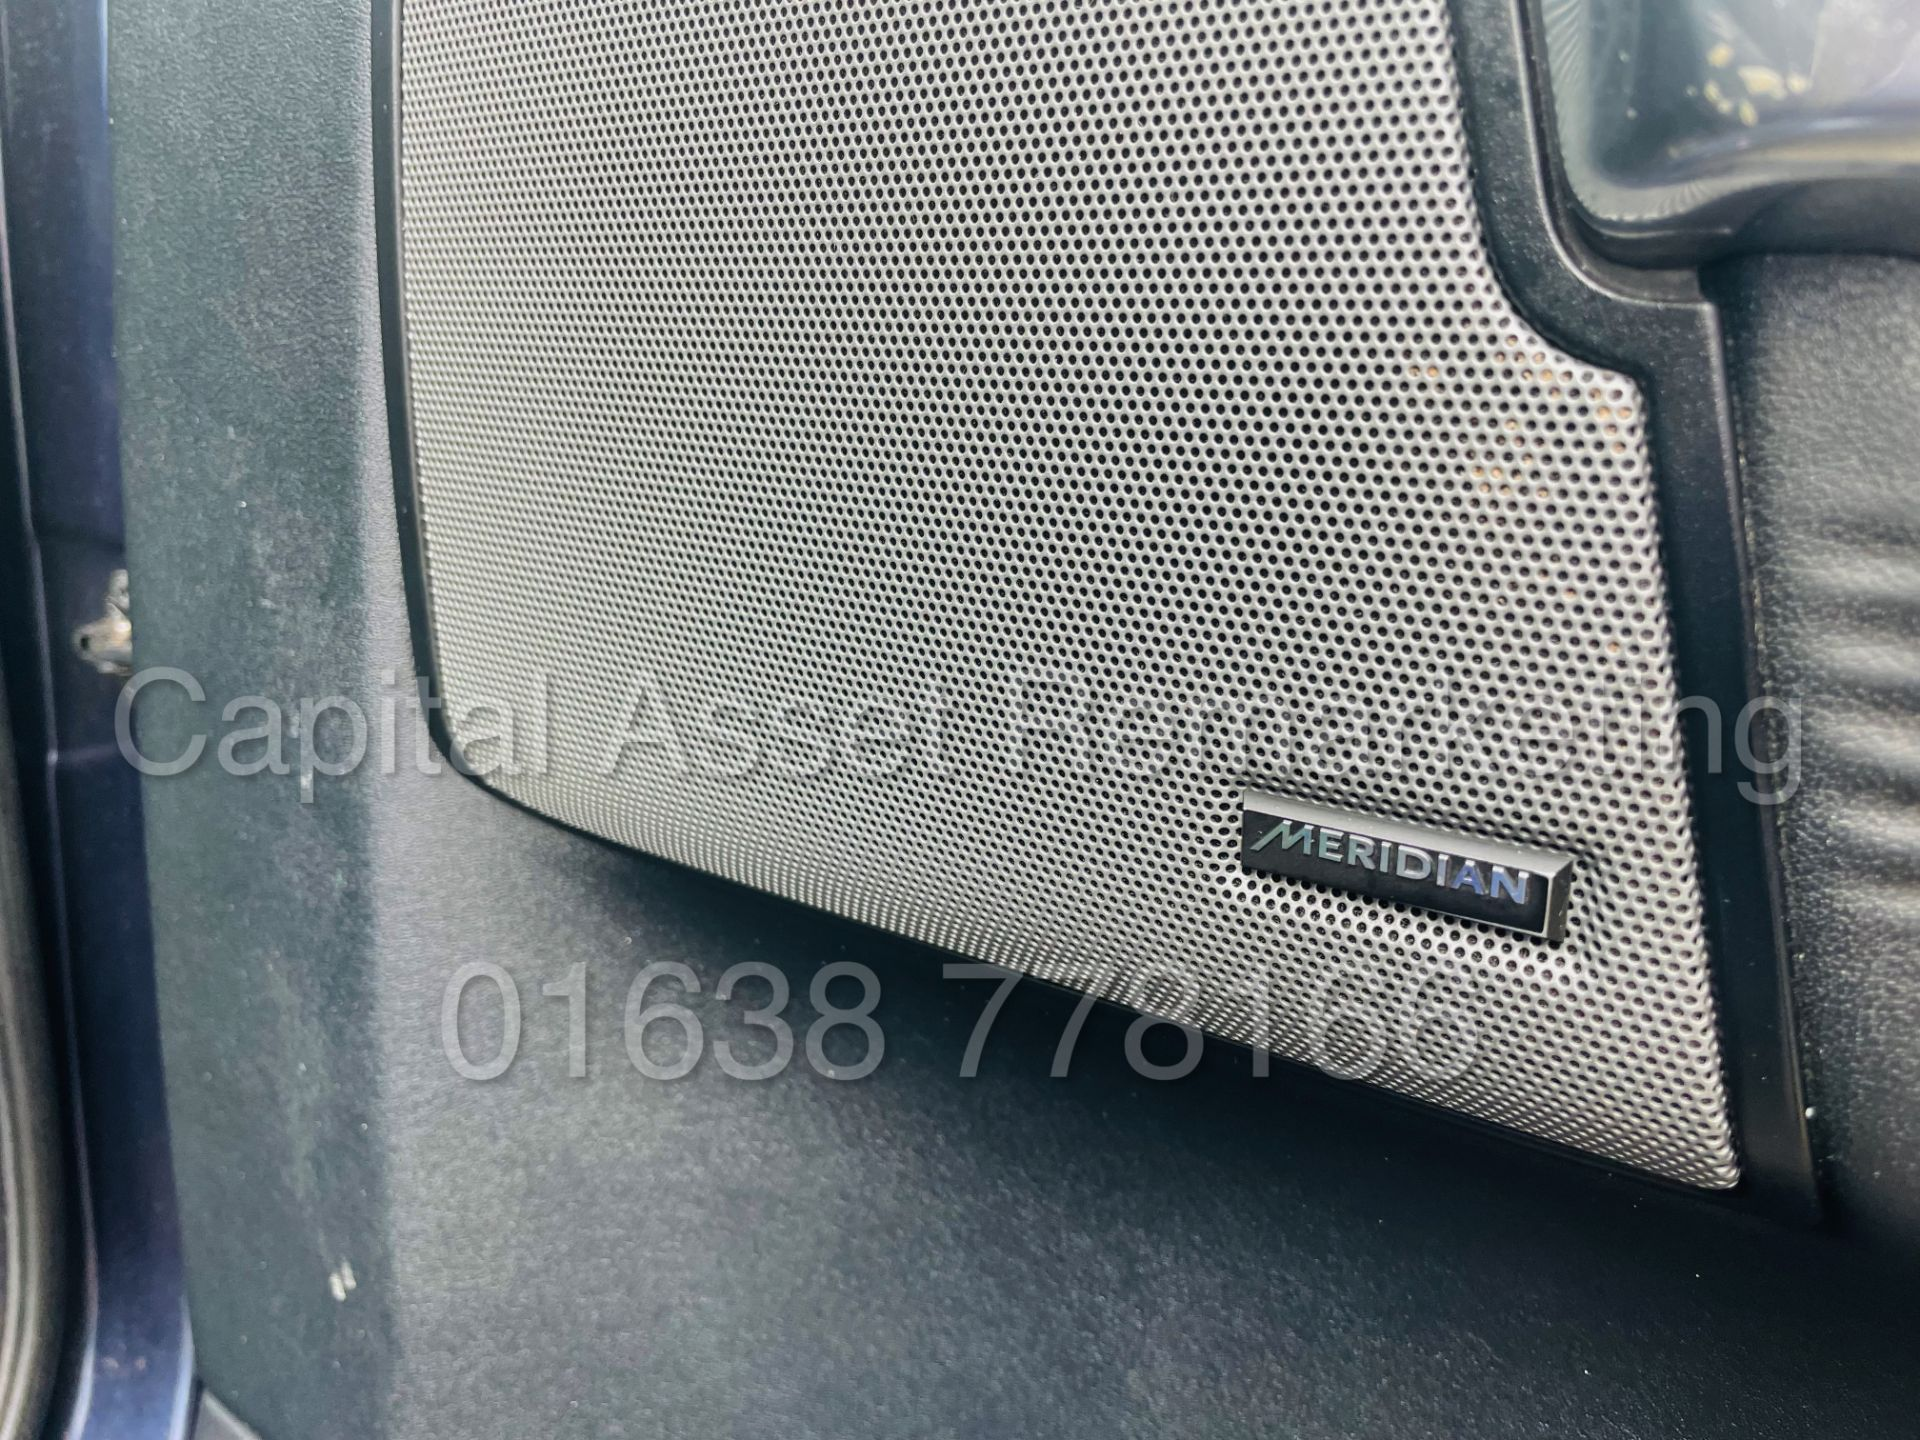 LAND ROVER DISCOVERY 4 *HSE* 7 SEATER SUV (2014 - NEW MODEL) '3.0 SDV6 - 255 BHP - 8 SPEED AUTO' - Image 40 of 61